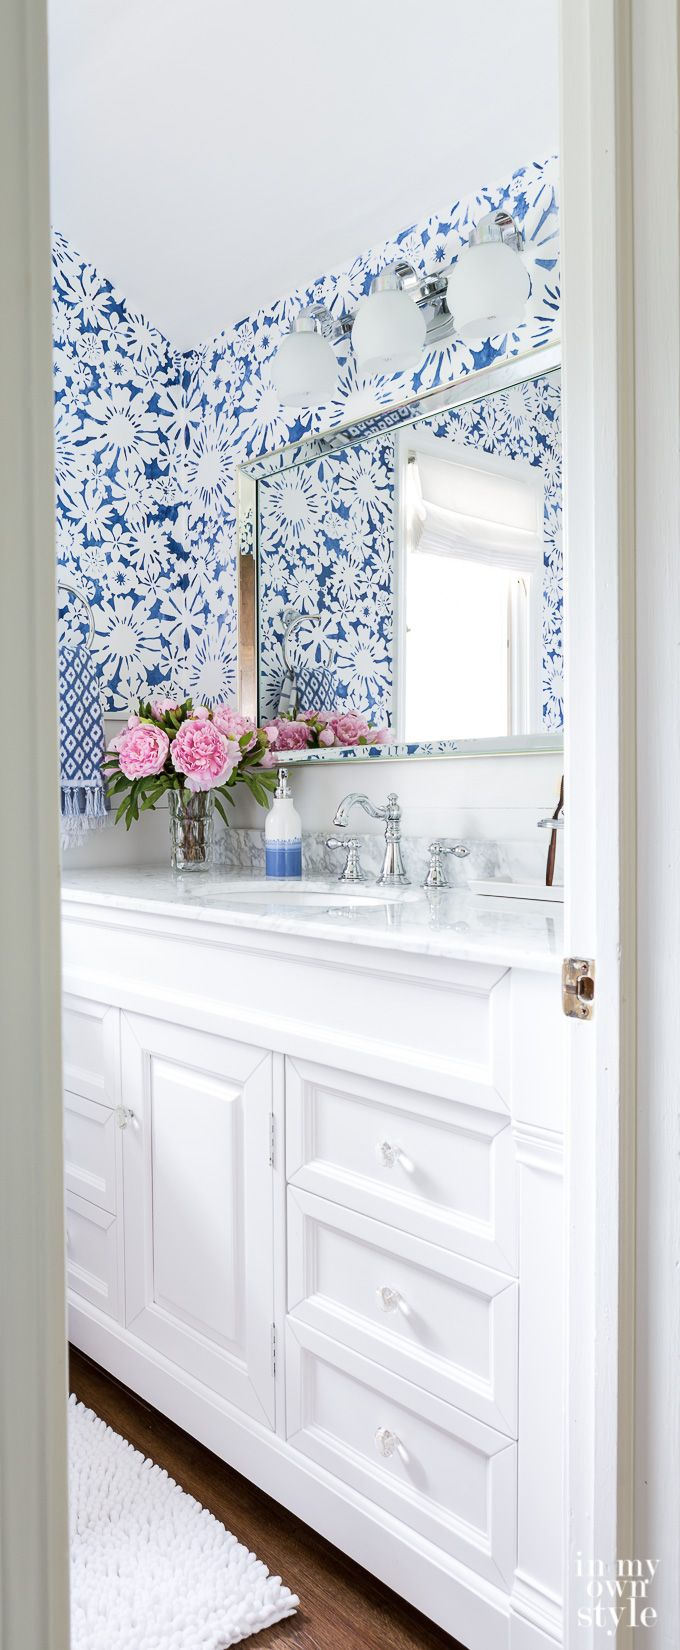 Blue And White DIY Stenciled Bathroom Makeover, Perfect For Color Lovers  Who Donu0027t Pictures